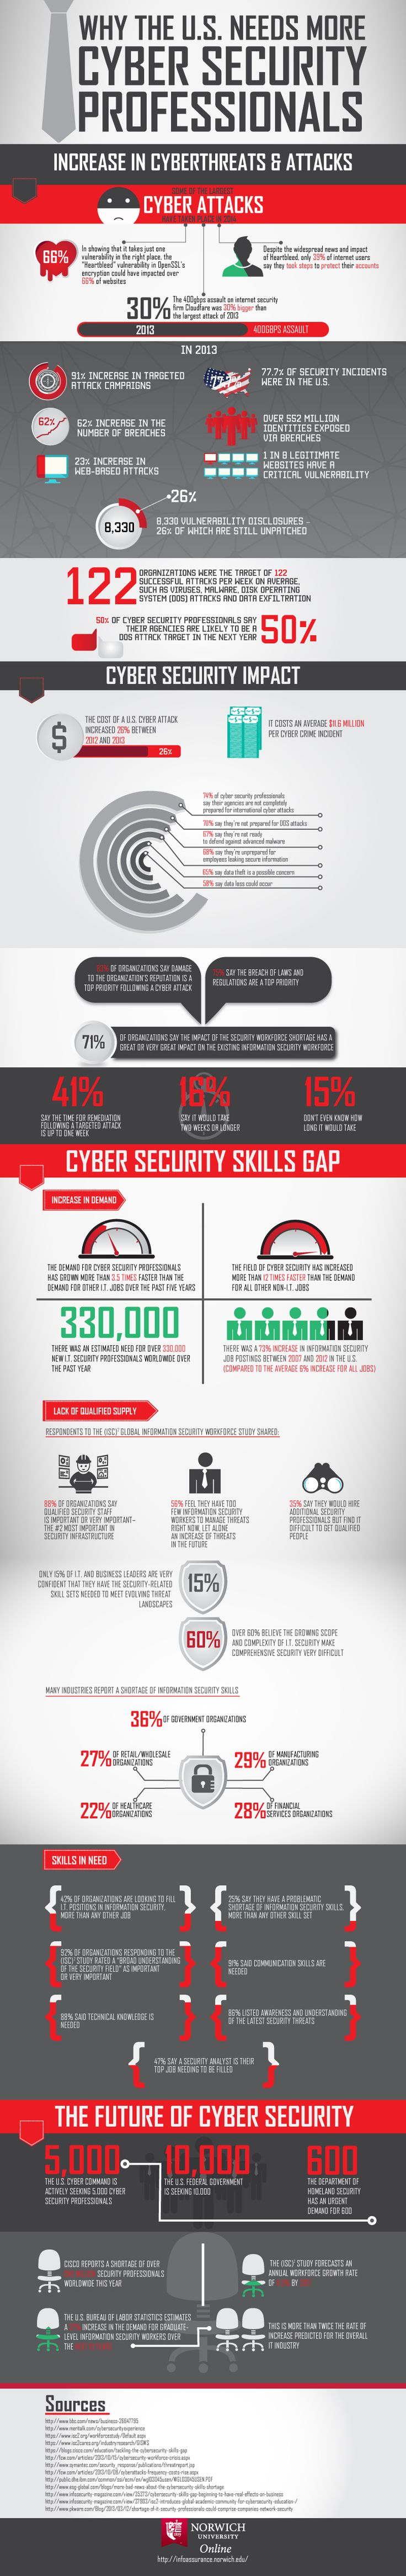 Happy Cyber Security Awareness Month! Take a look at this visualization of the needs of #cybersecurity in the United States. http://infoassurance.norwich.edu/why-the-us-needs-more-cyber-professionals/